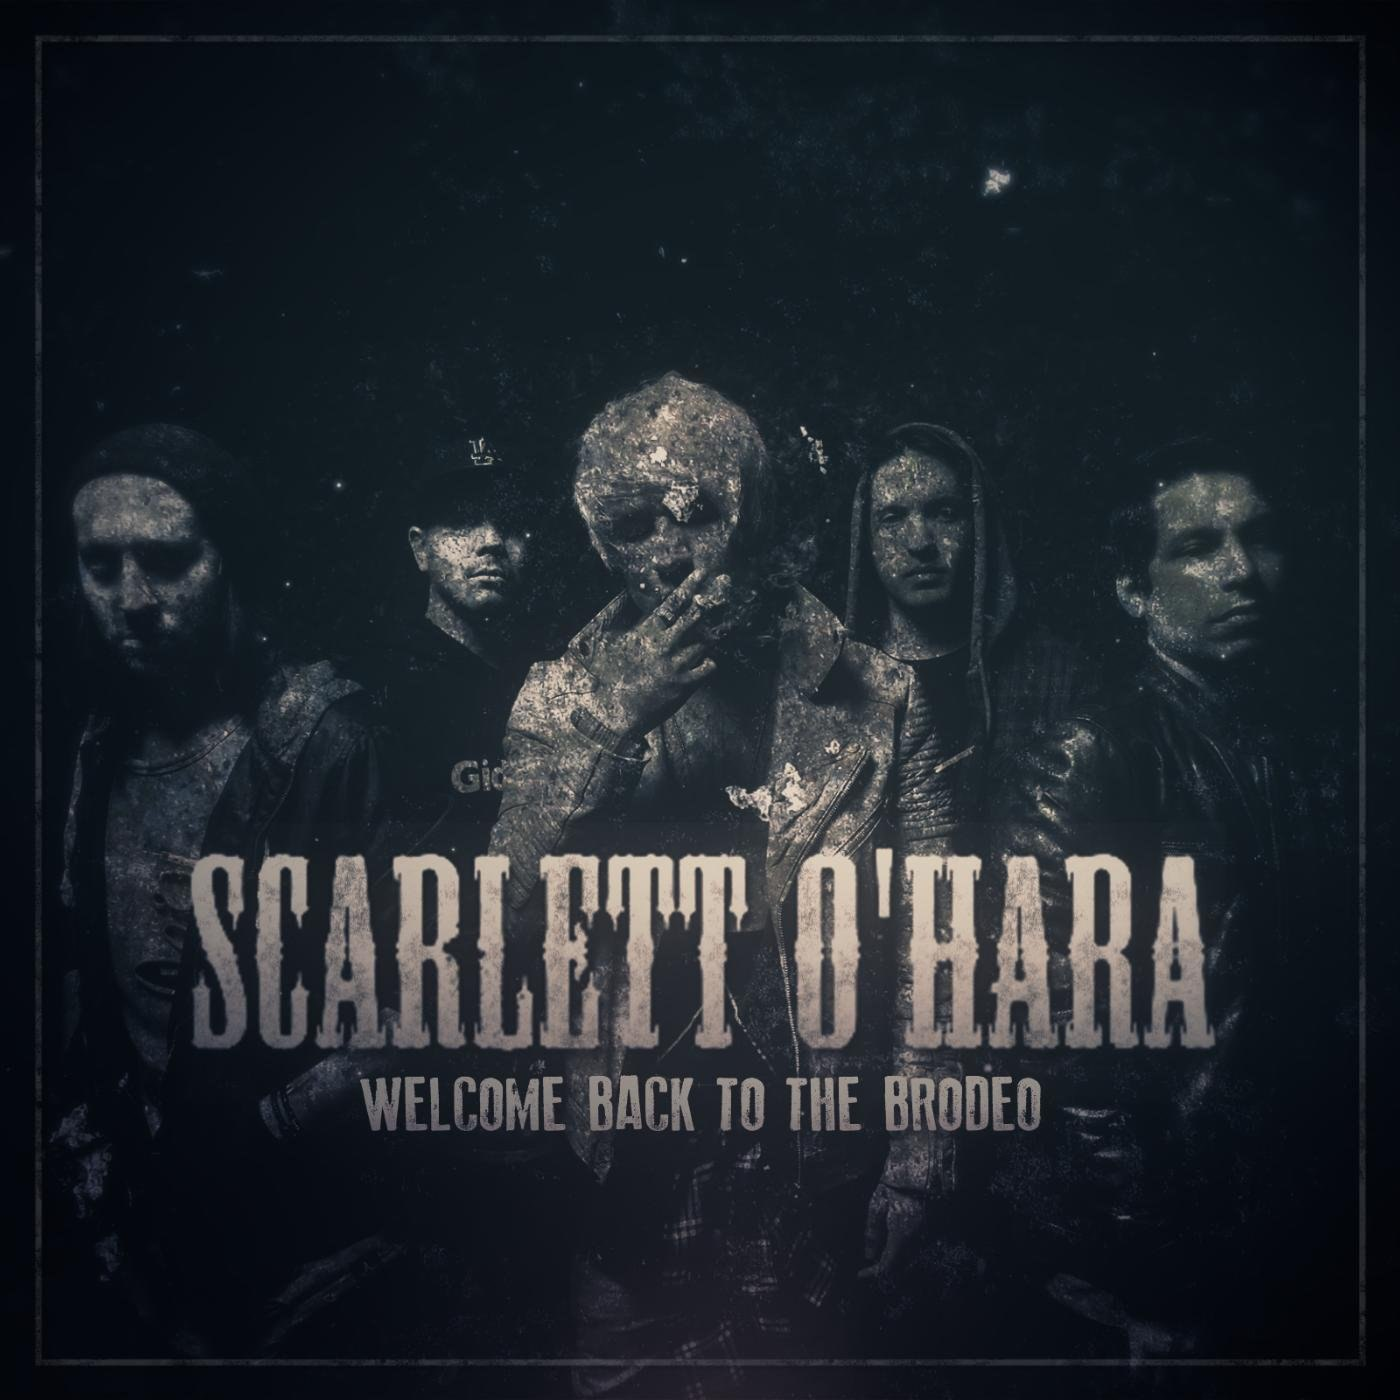 Scarlett O'Hara - Welcome Back to the Brodeo (Step Right Up) [single] (2017)